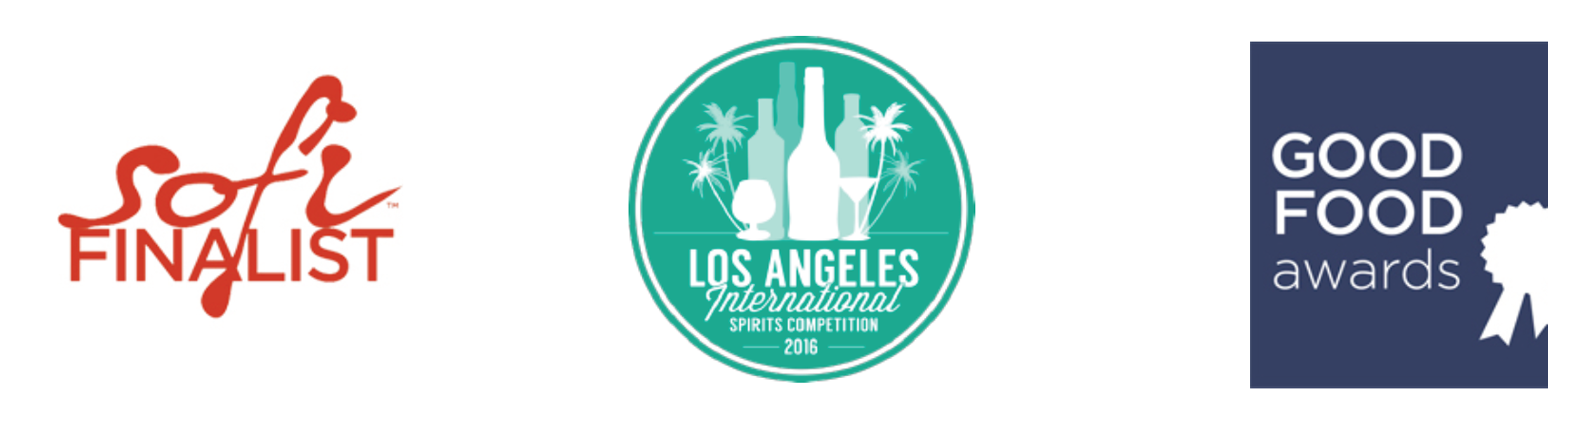 SOFI award winning, Los Angeles International Spirts, Good Food awards winning products